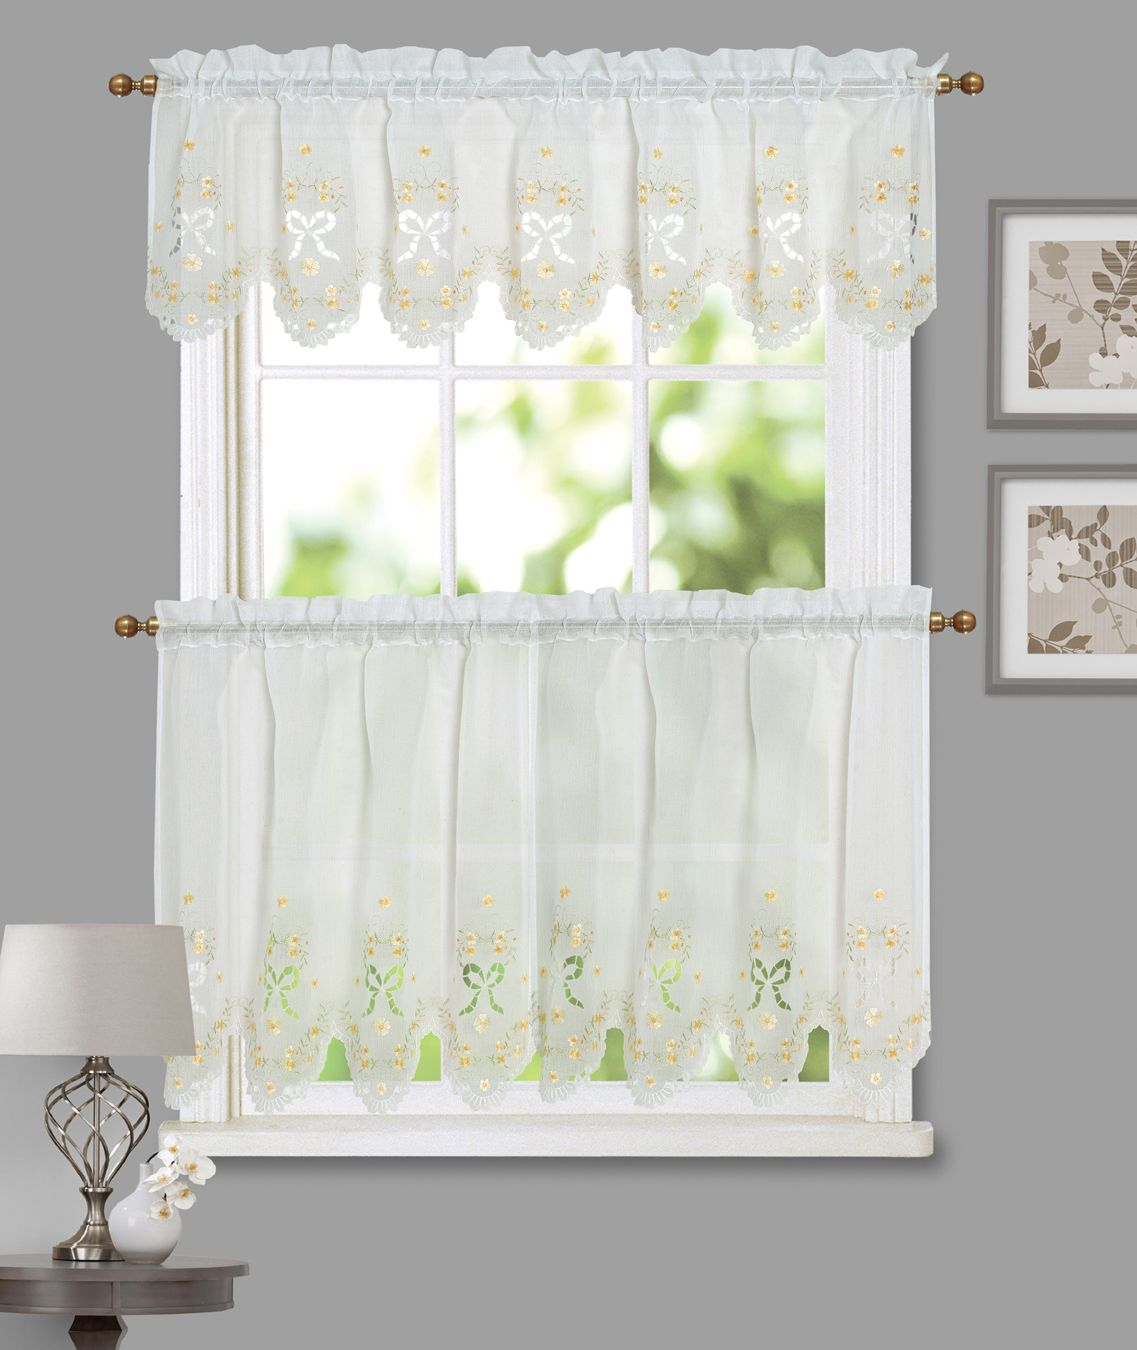 Blossoms And Bows Semi Sheer Faux Linen – Kitchen Curtains For Semi Sheer Rod Pocket Kitchen Curtain Valance And Tiers Sets (View 2 of 20)